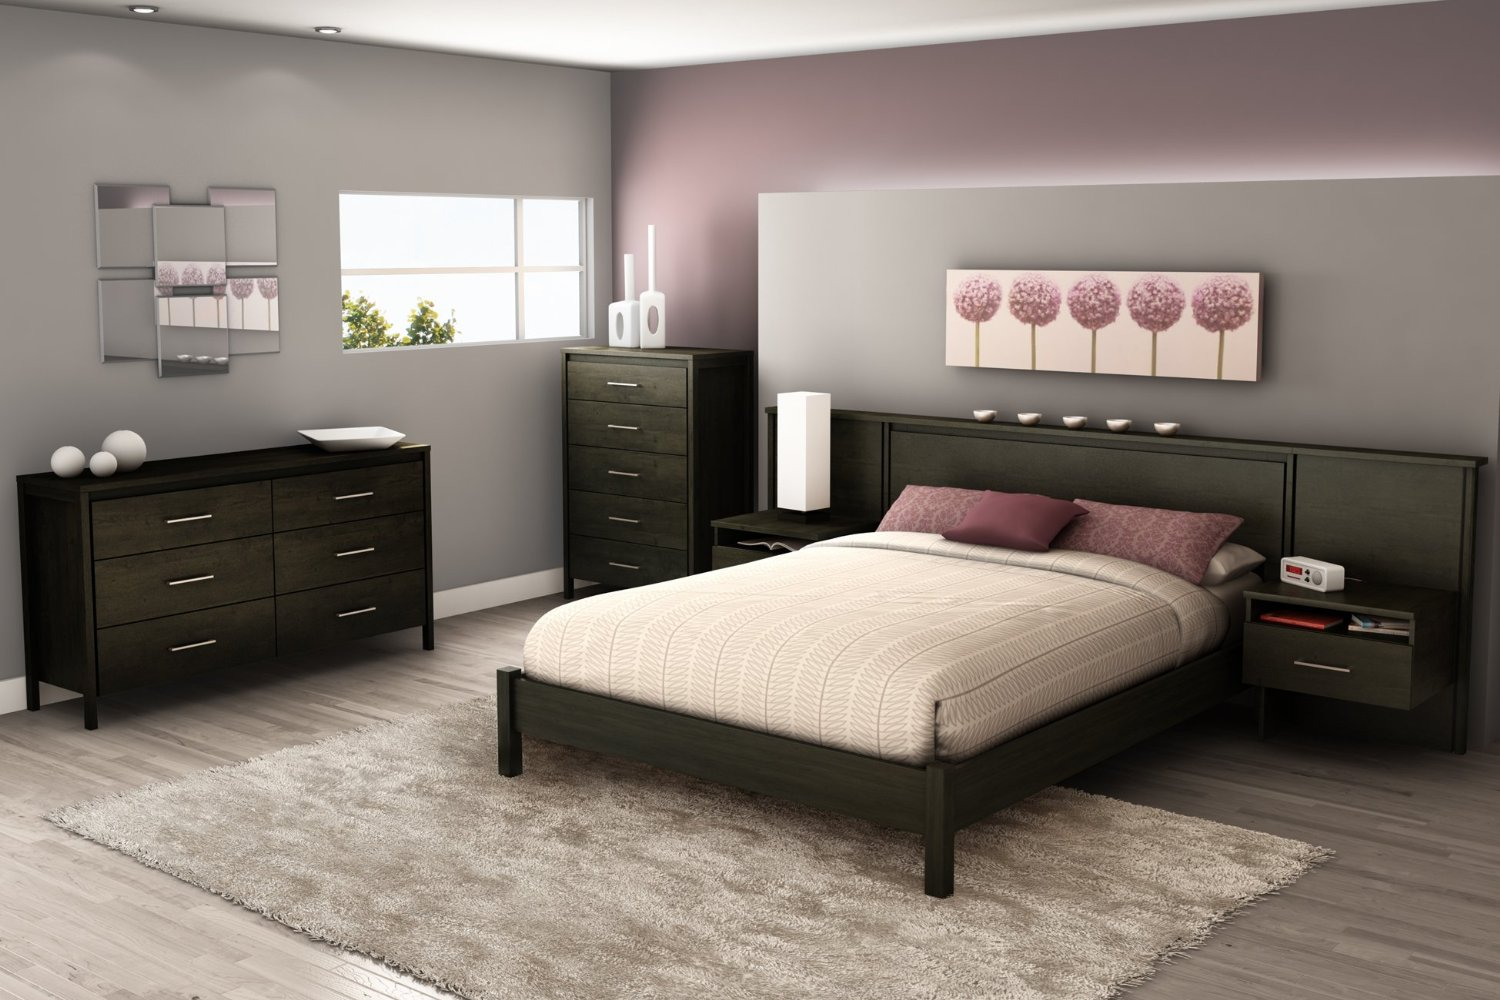 Total fab headboard with nightstands attached for Bedroom set and mattress